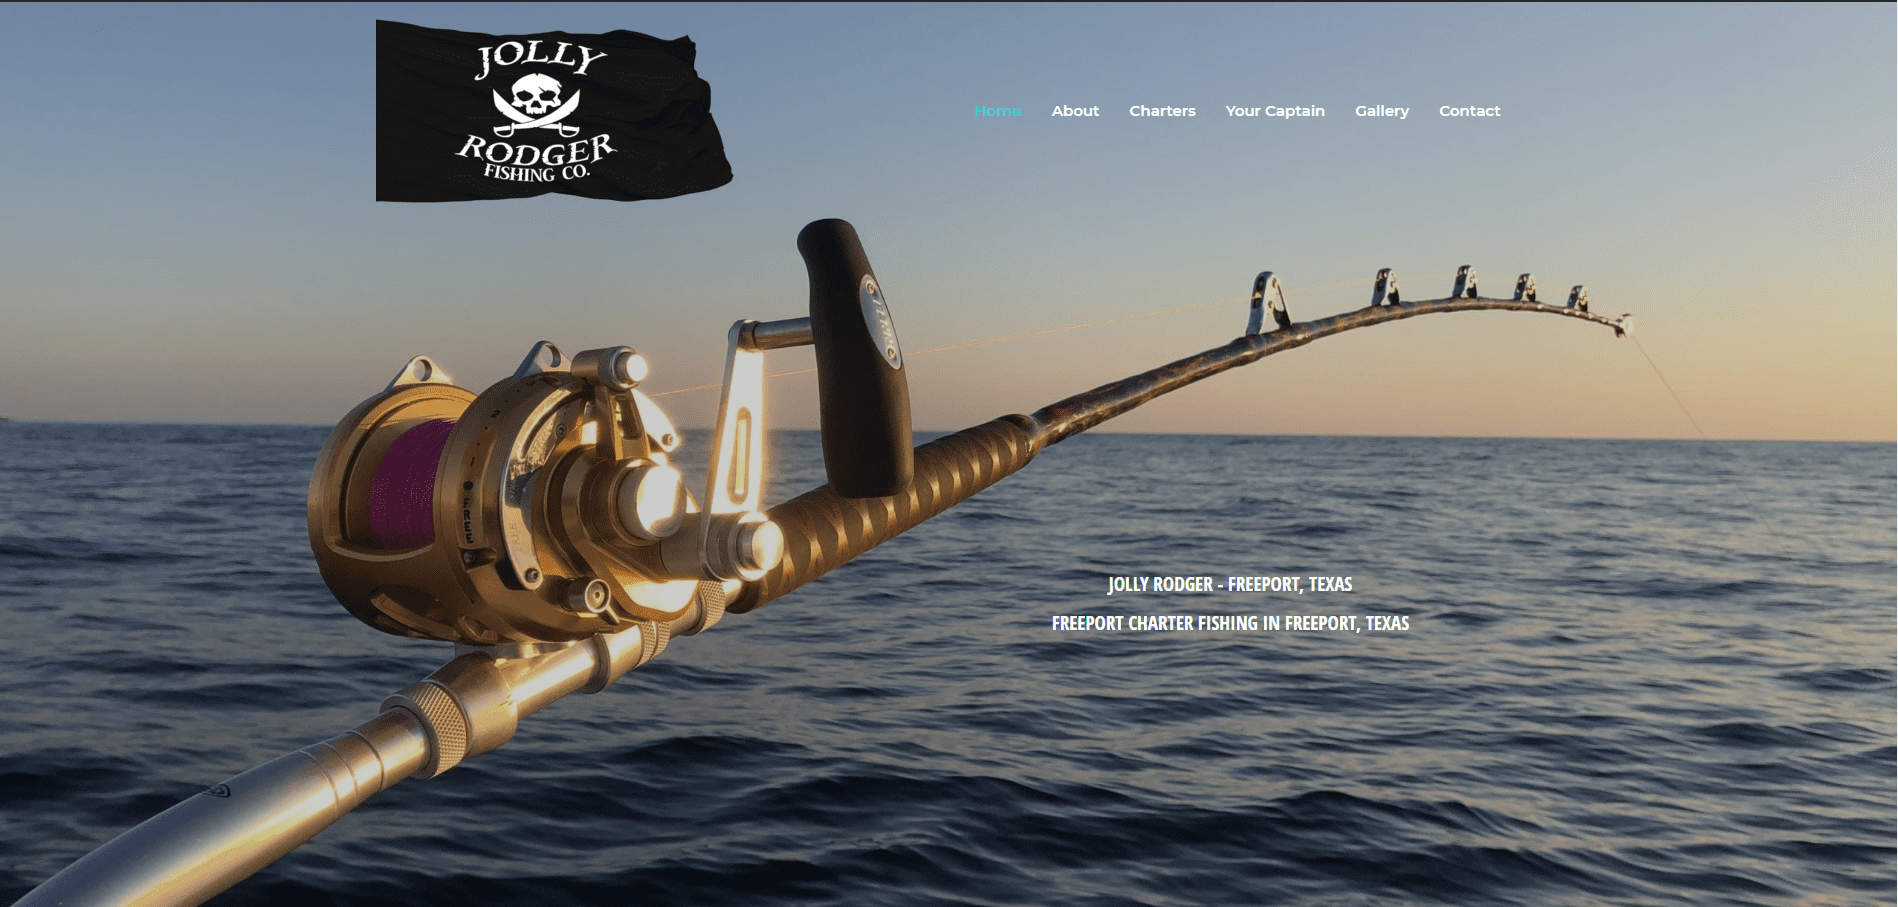 """<p align=""""center"""">Freeport Charter Fishing<br> Deep Sea fishing on the Jolly Rodger in Freeport, Texas  Best Charter Fishing in Freeport, Texas.</p>"""